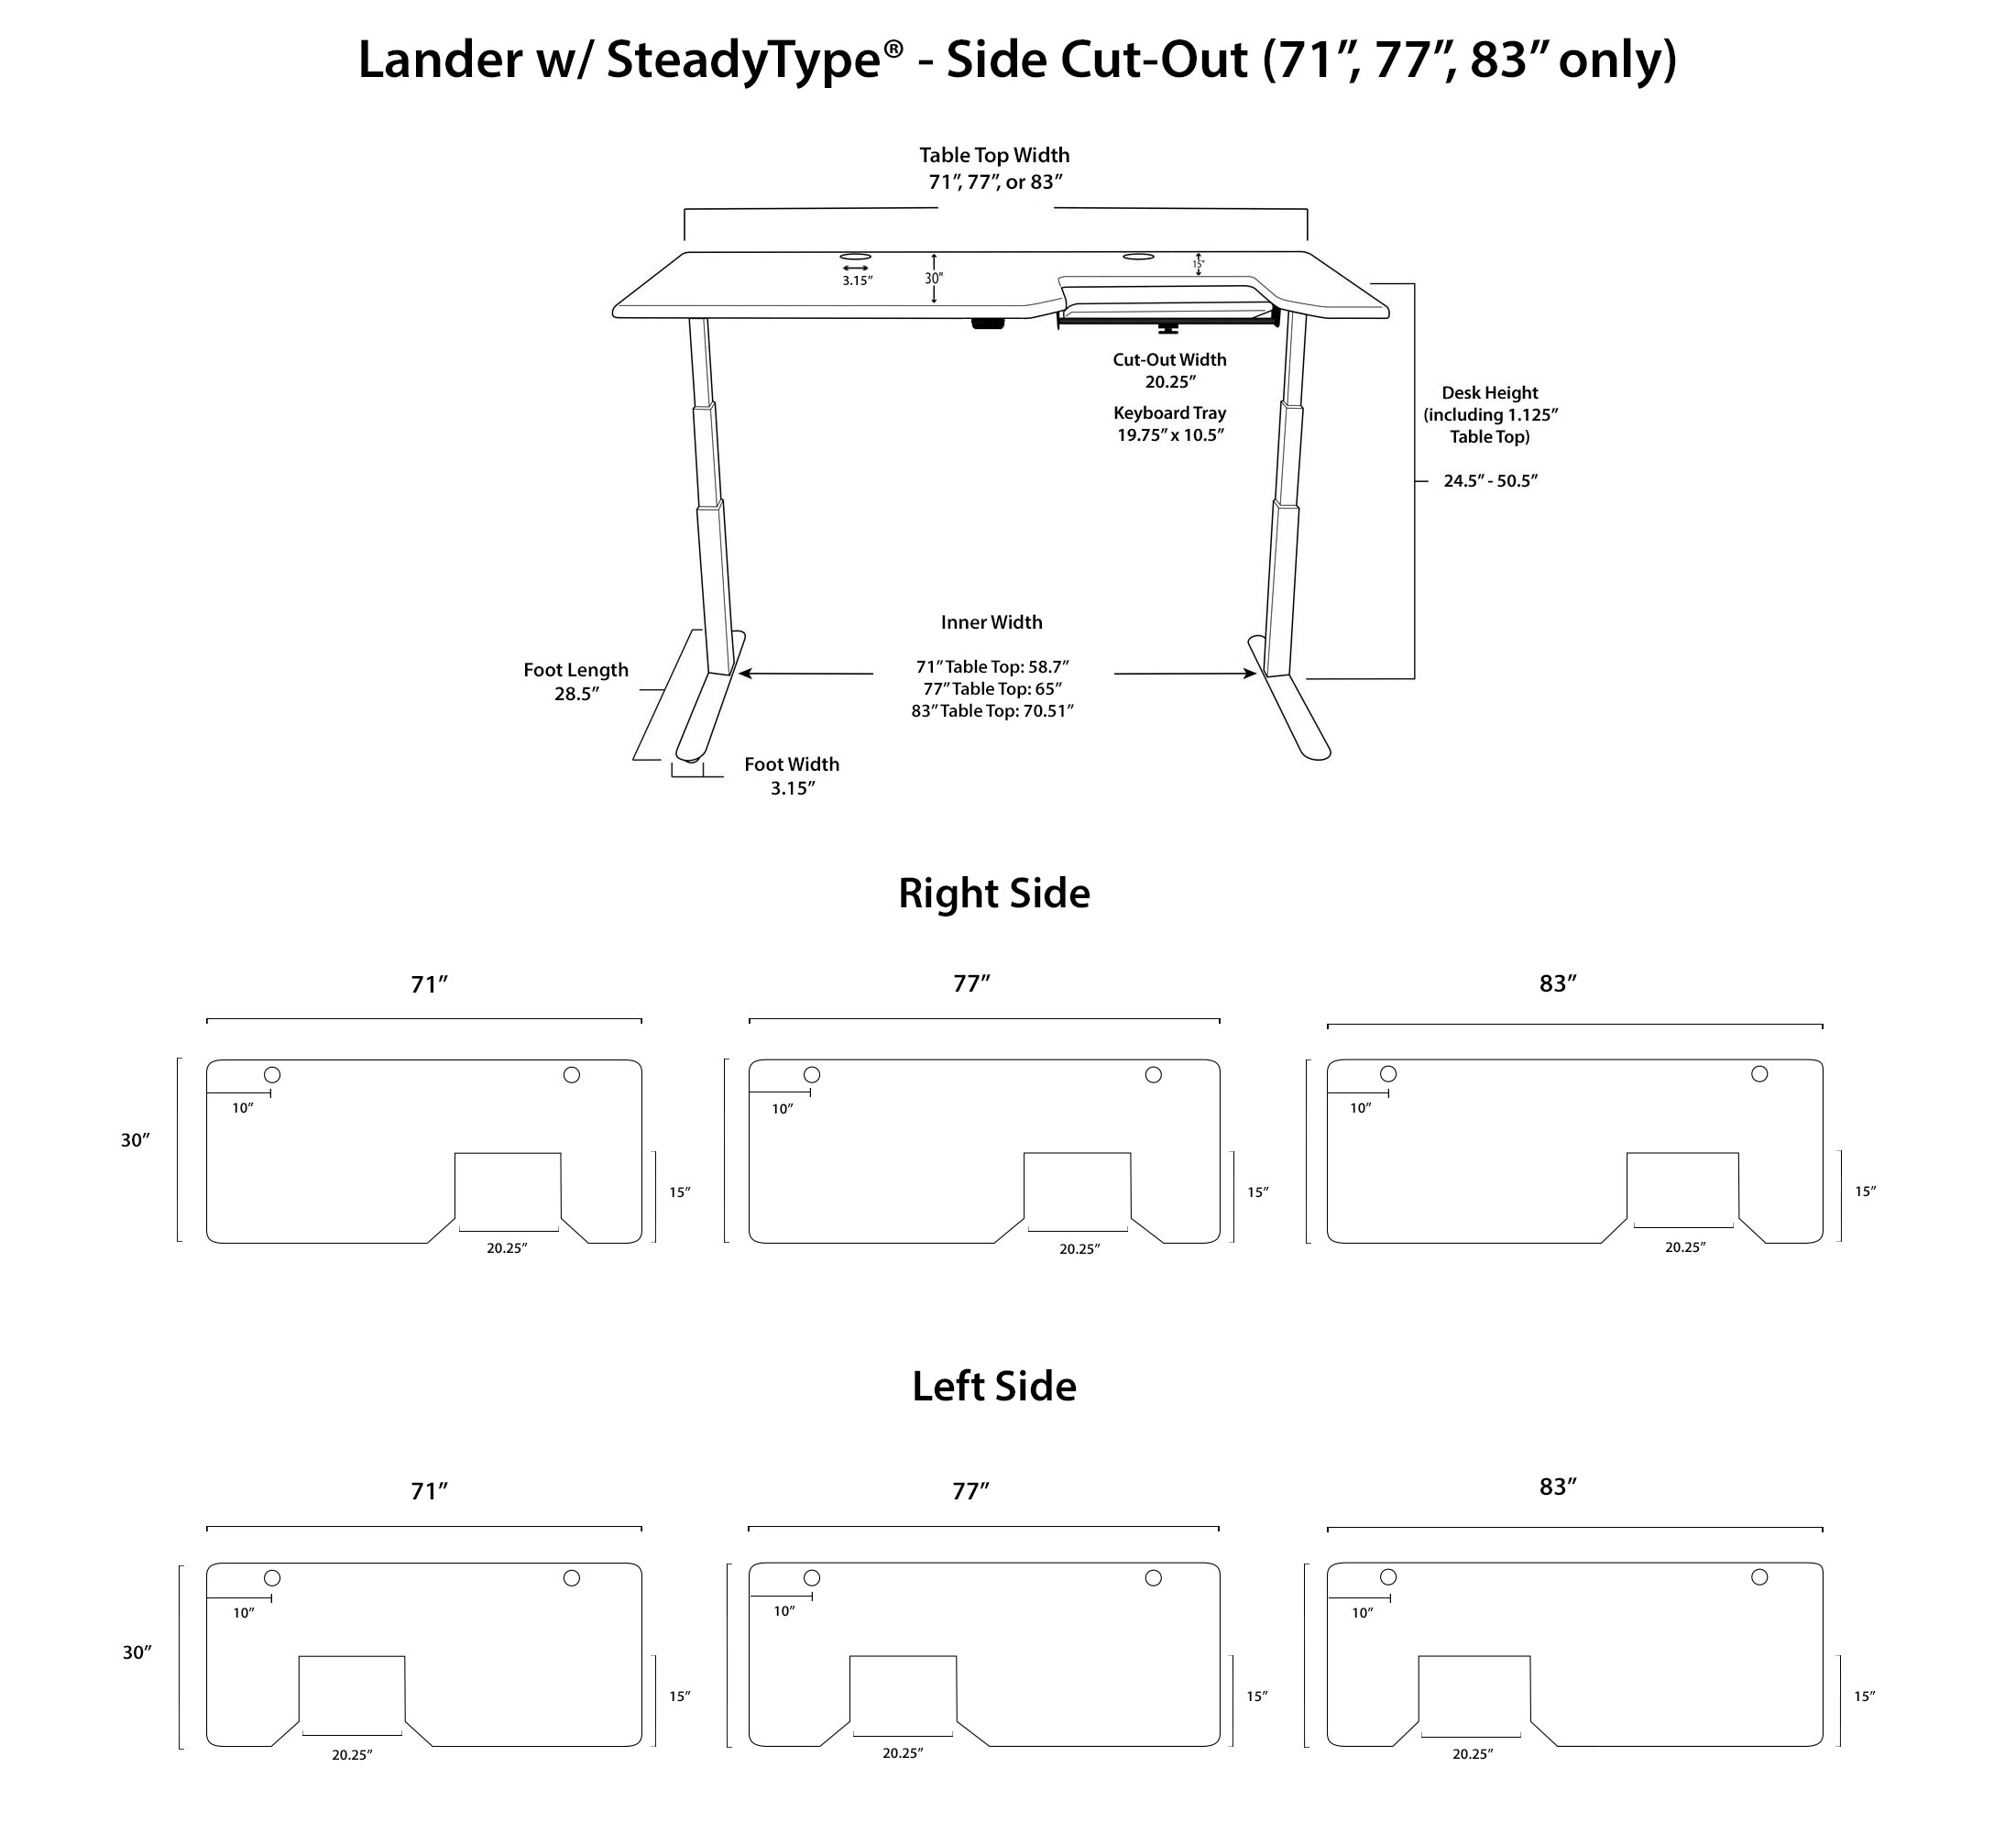 Lander SteadyType Standing Desk - Side Cut Out Diagrams